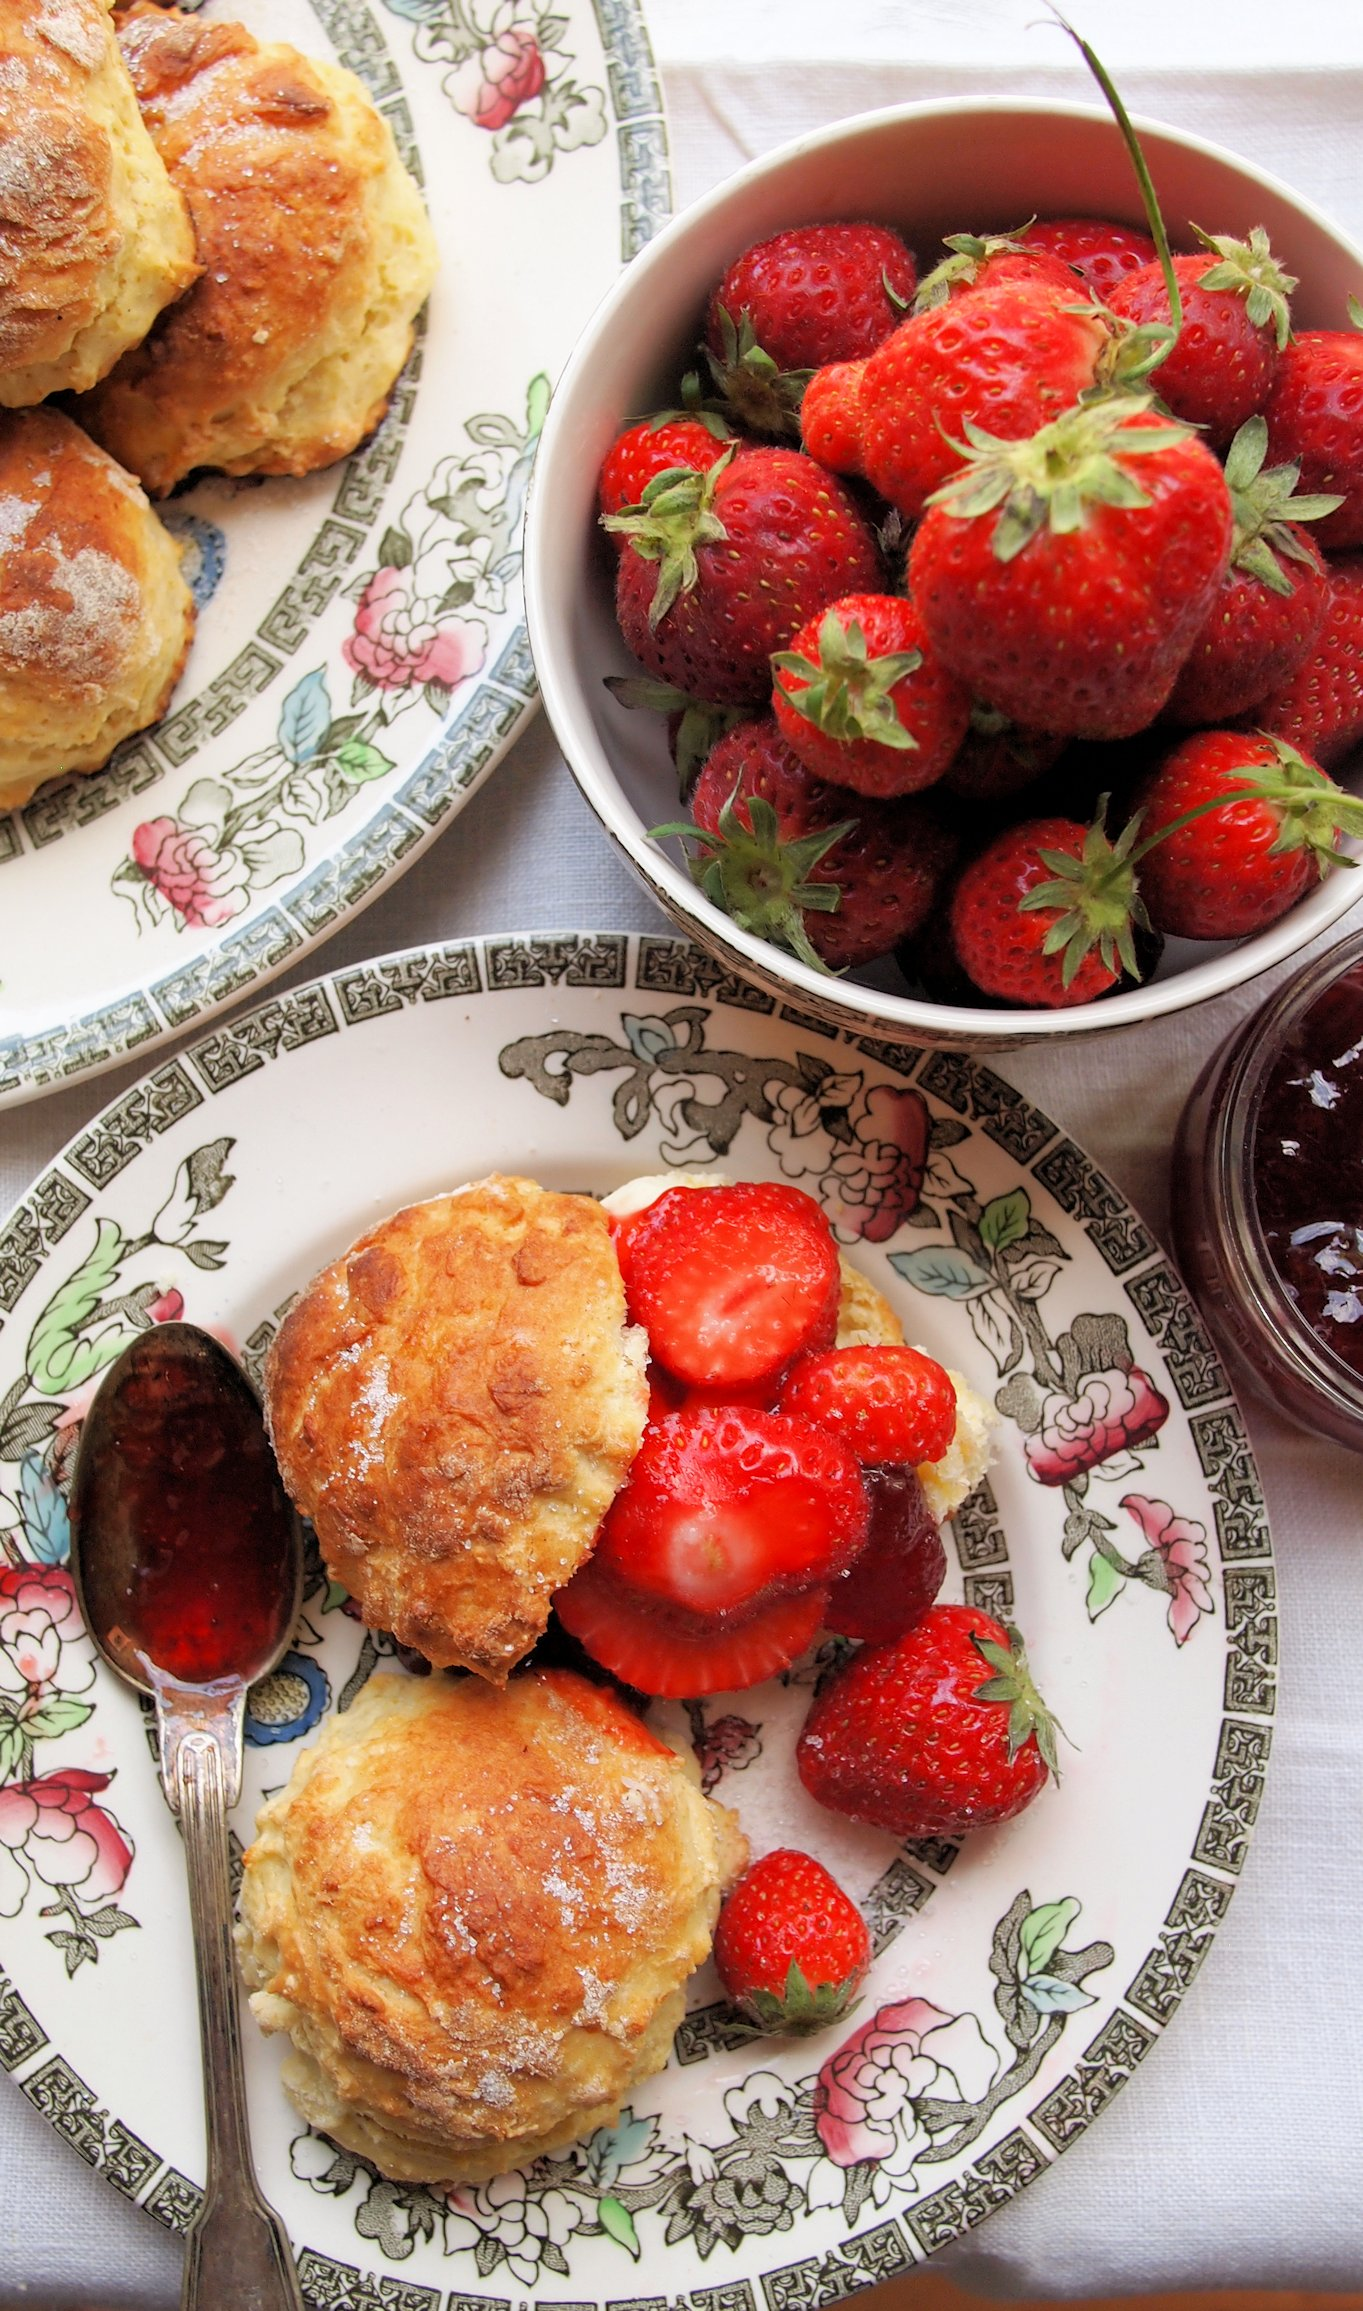 Low Calorie Vanilla Bean Scones for a Wimbledon Strawberries and Cream Tea